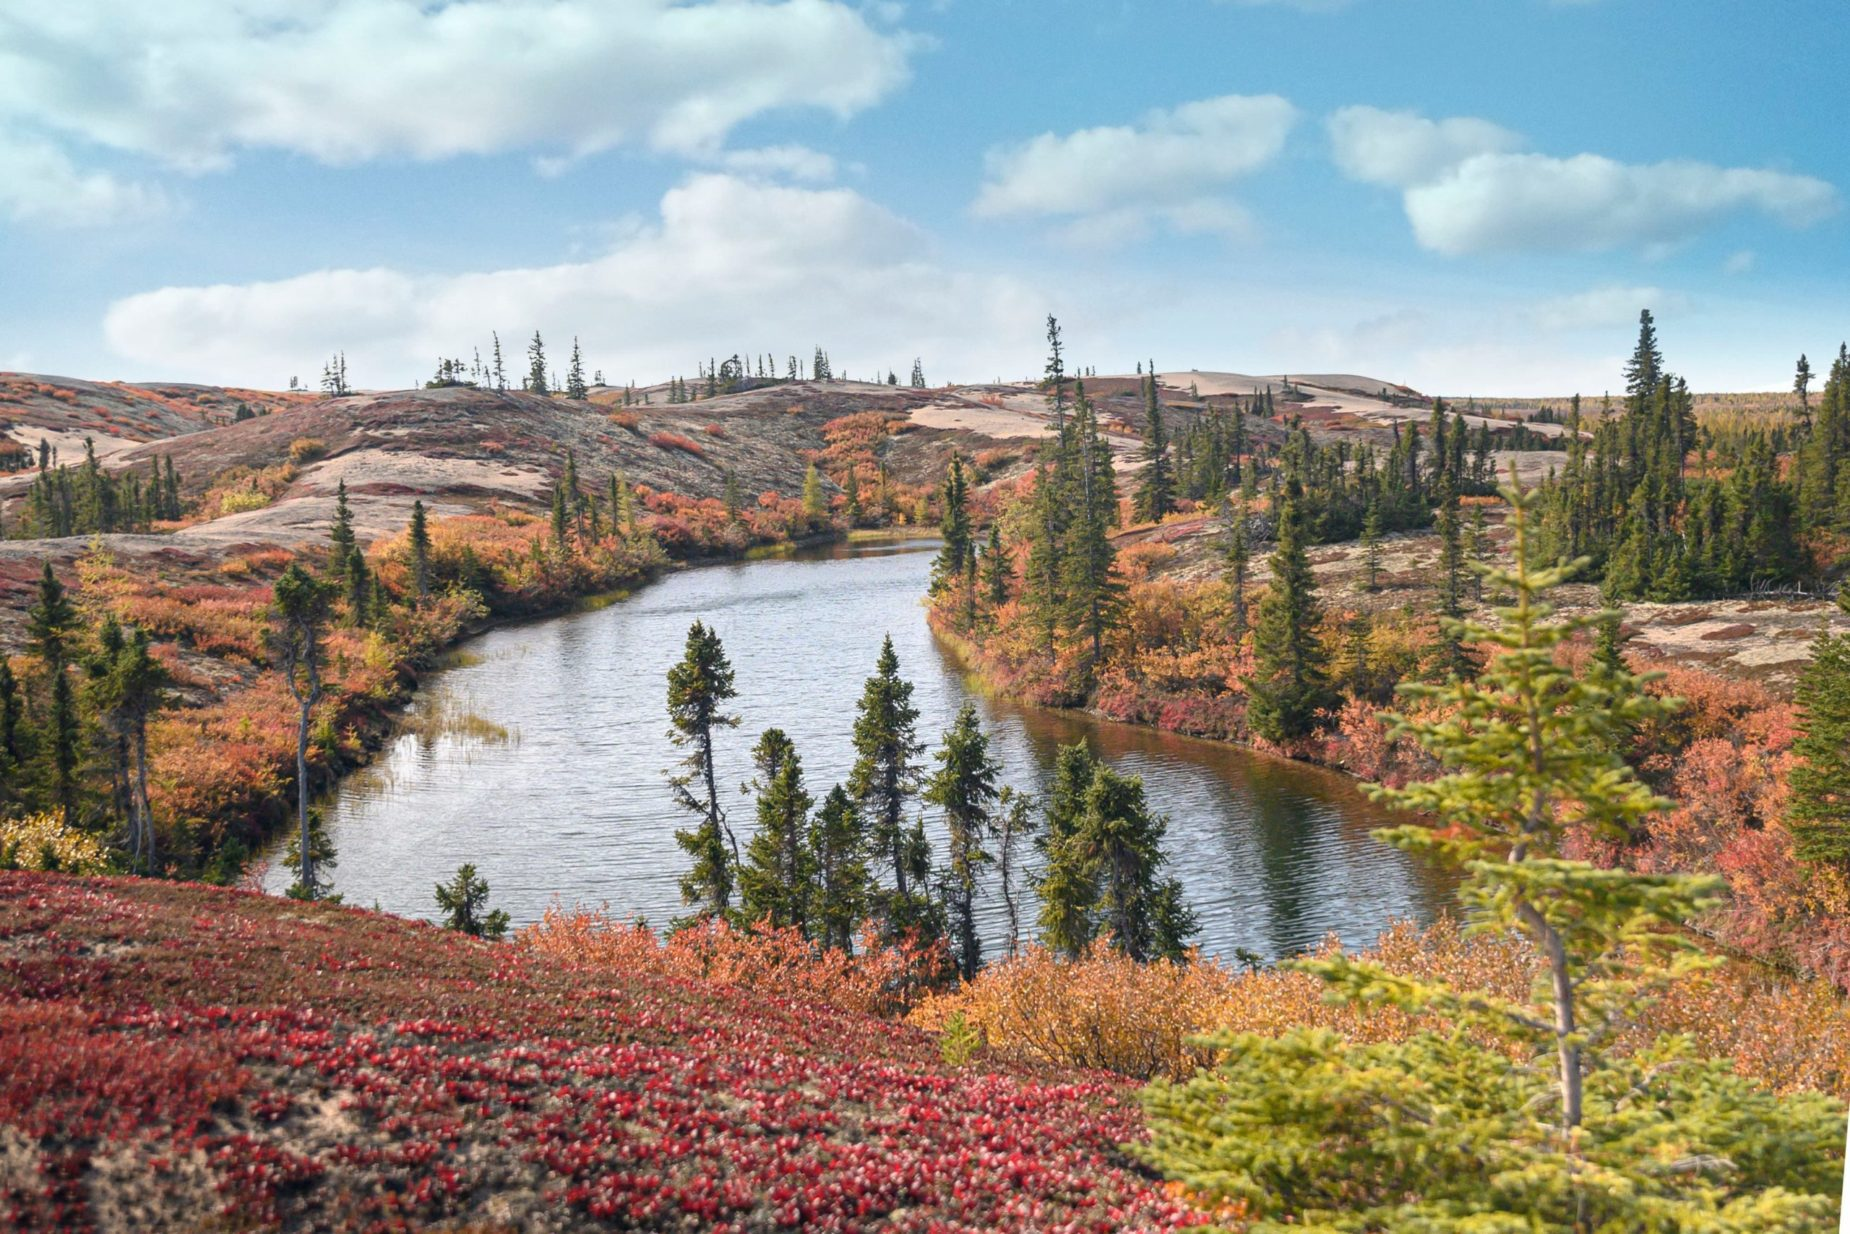 beautiful landscape image with a small pond, blue skies, and fall colors